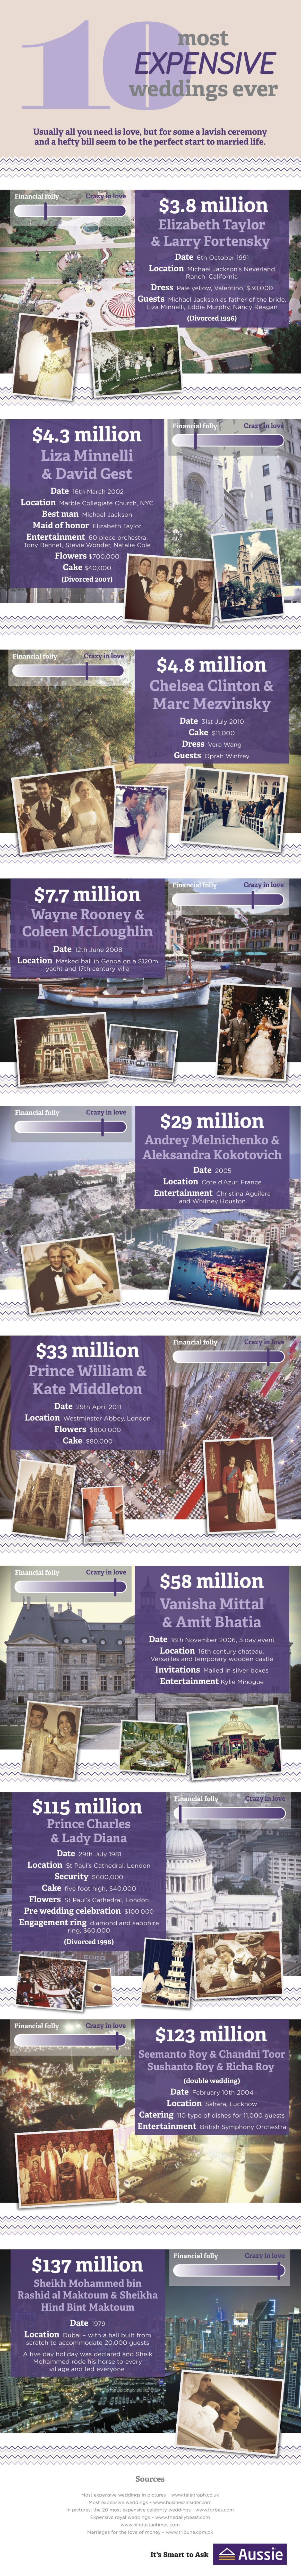 10 Most Expensive Weddings [Infographic] Infographic